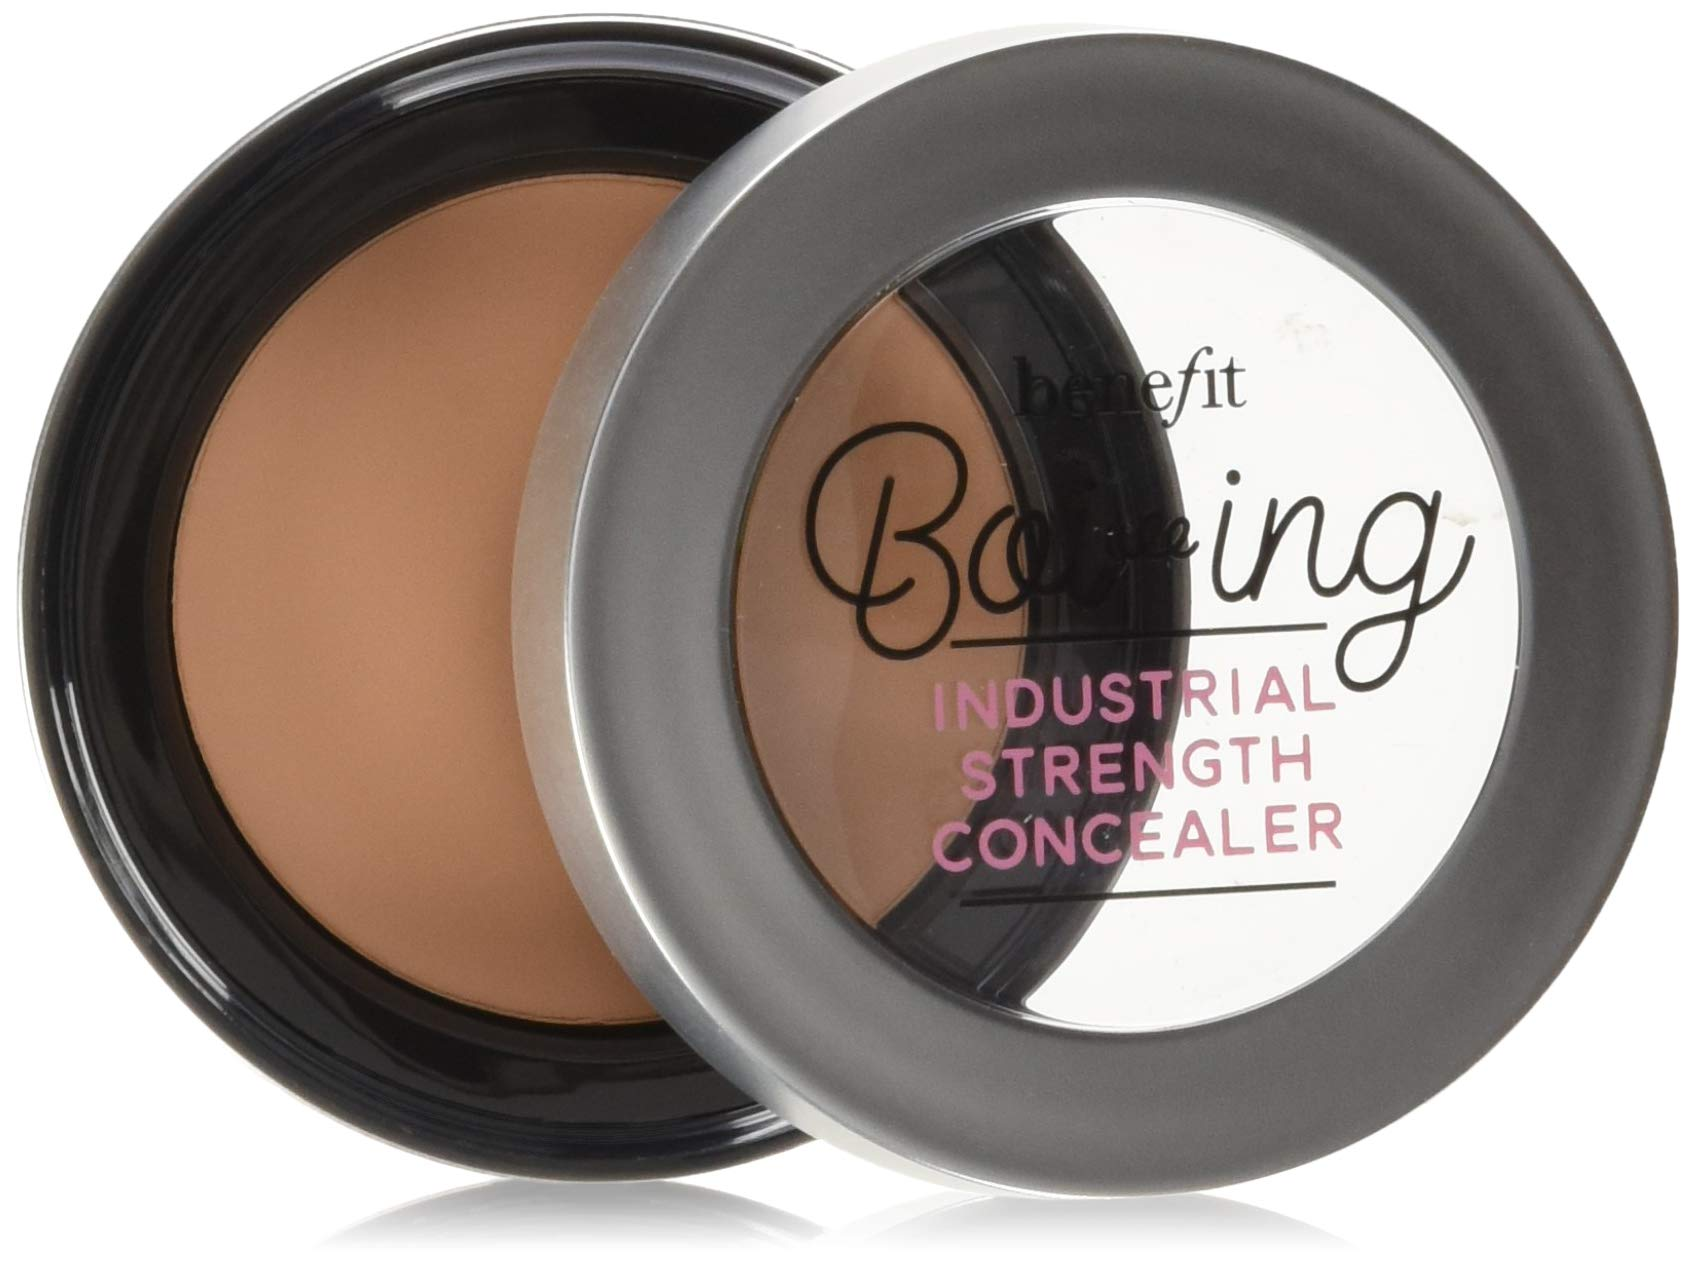 Benefit Boi ing Industrial Strength Concealer - # 02 (Light/Medium) 3g/0.1oz by BENEFIT